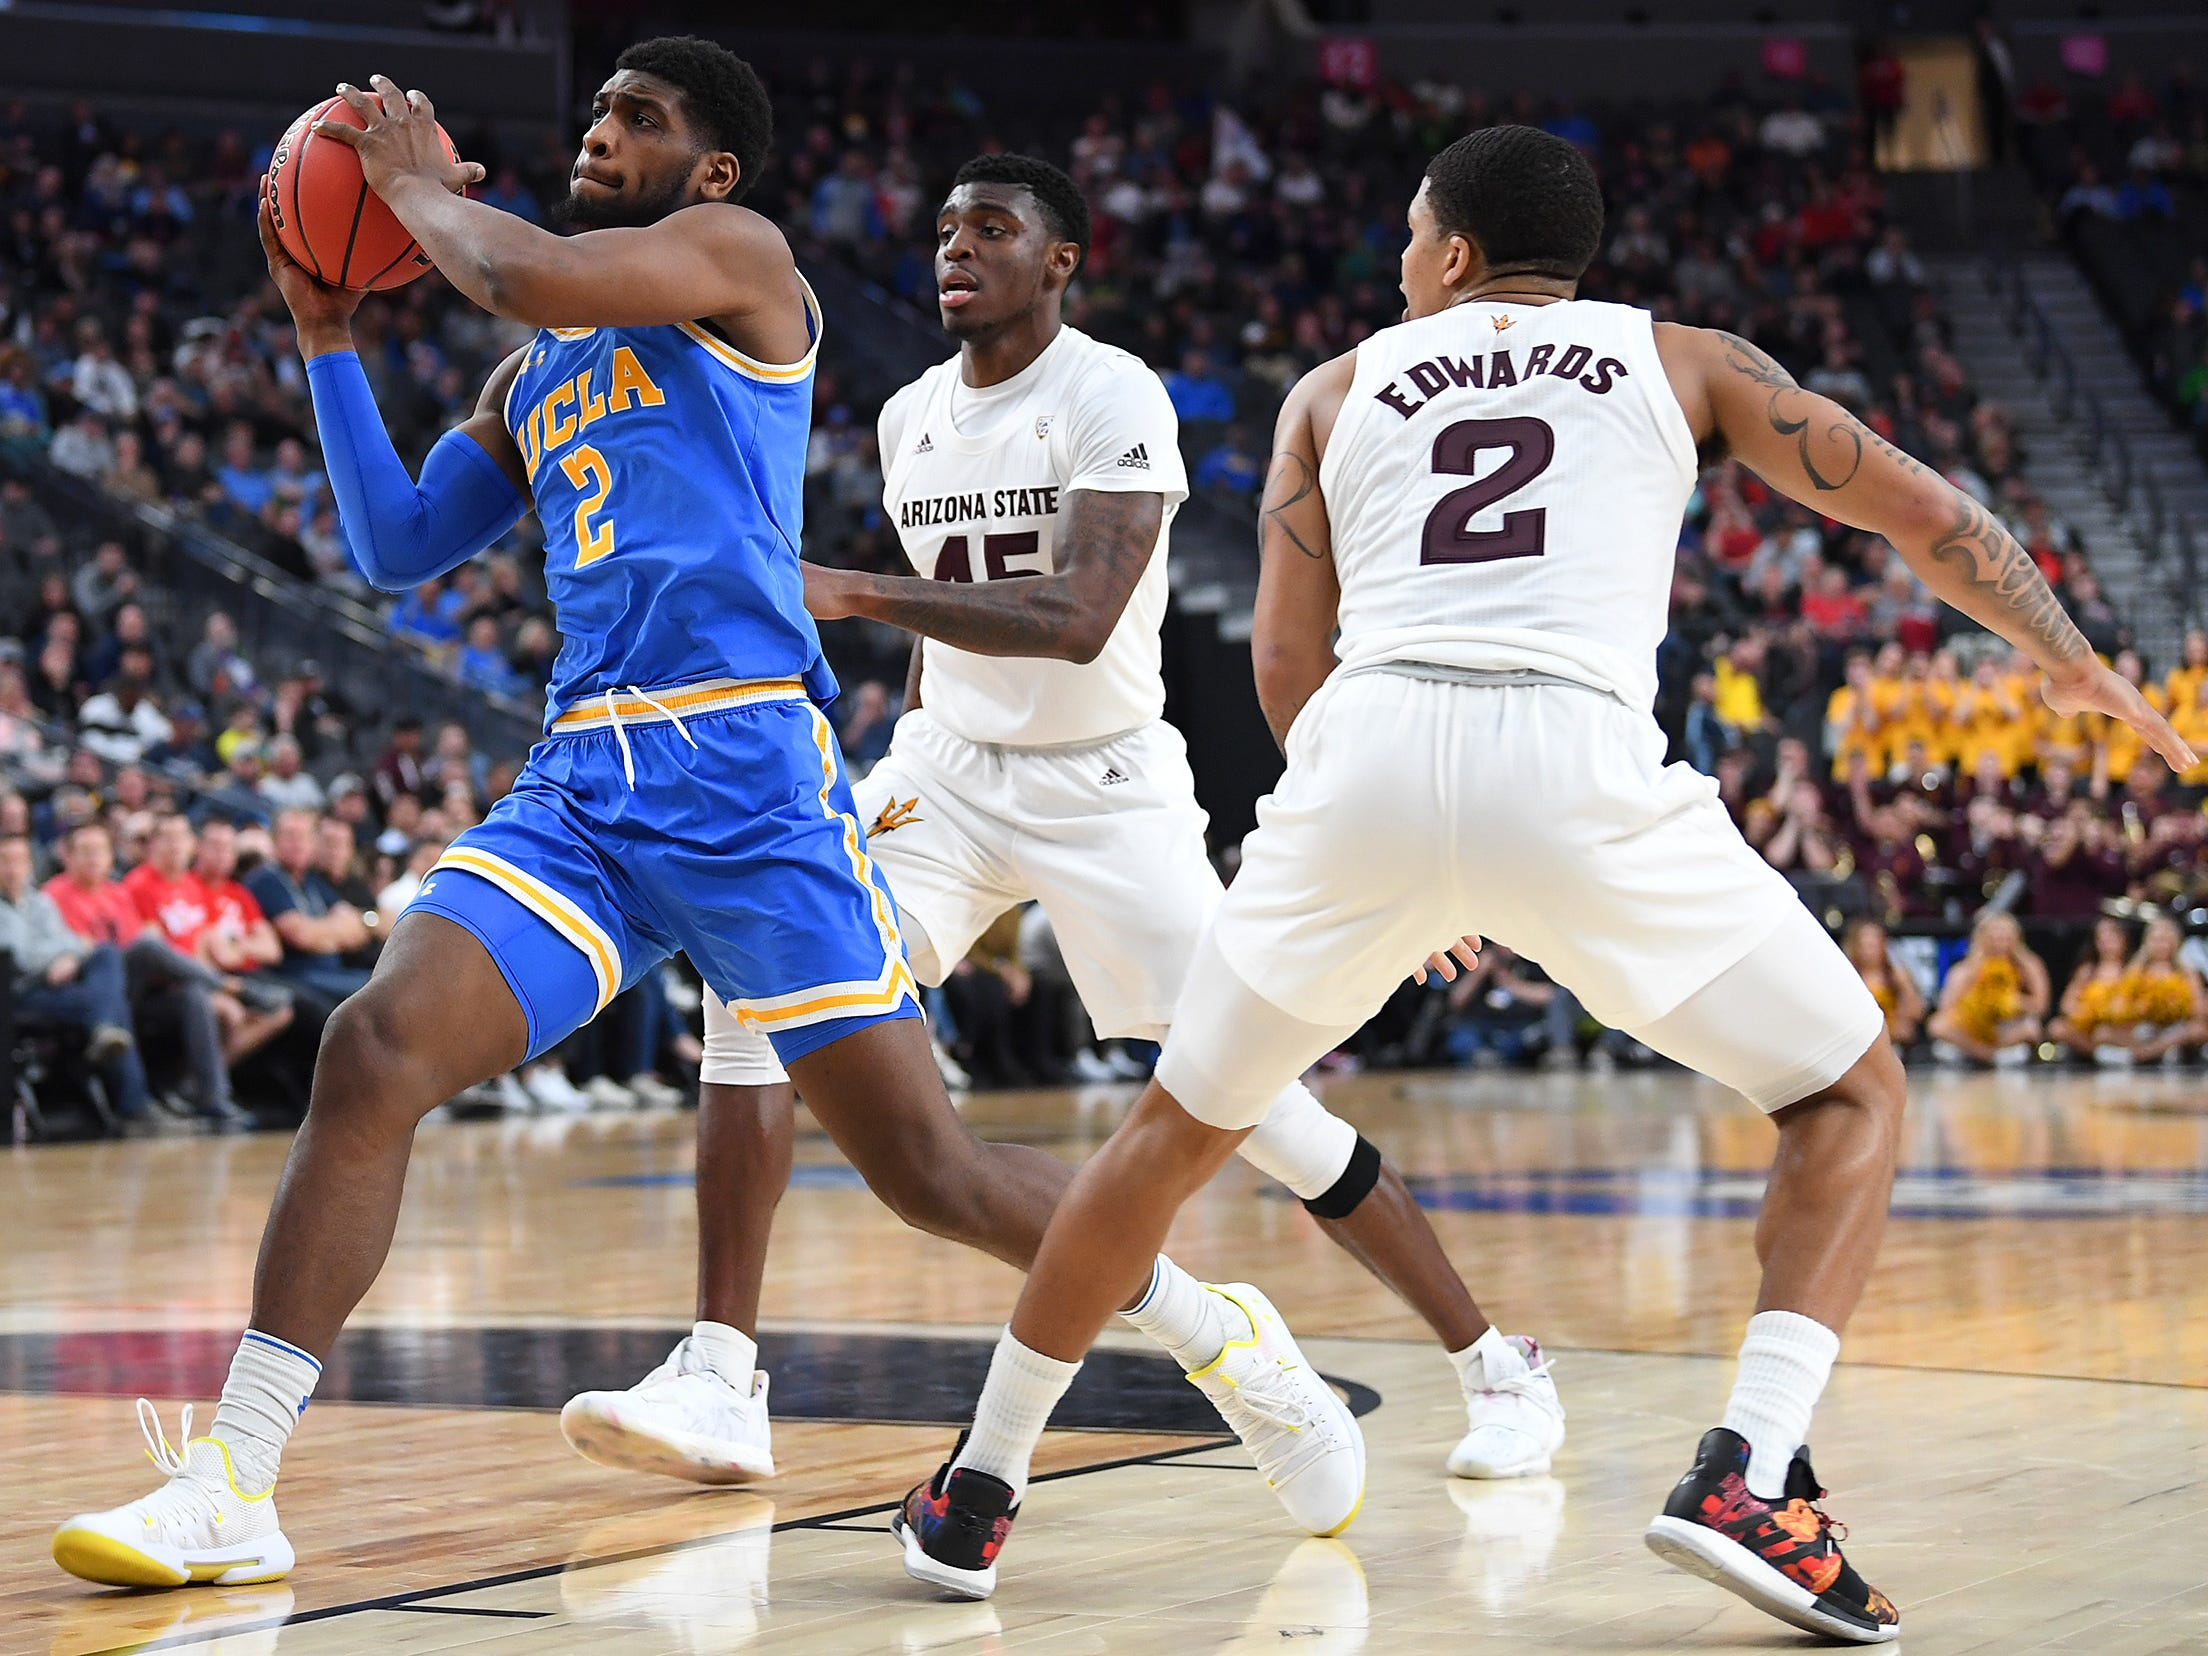 Mar 14, 2019; Las Vegas, NV, United States; UCLA Bruins forward Cody Riley (2) looks to shoot past Arizona State Sun Devils forward Zylan Cheatham (45) and Arizona State Sun Devils guard Rob Edwards (2) during the second half of a Pac-12 conference tournament game at T-Mobile Arena.